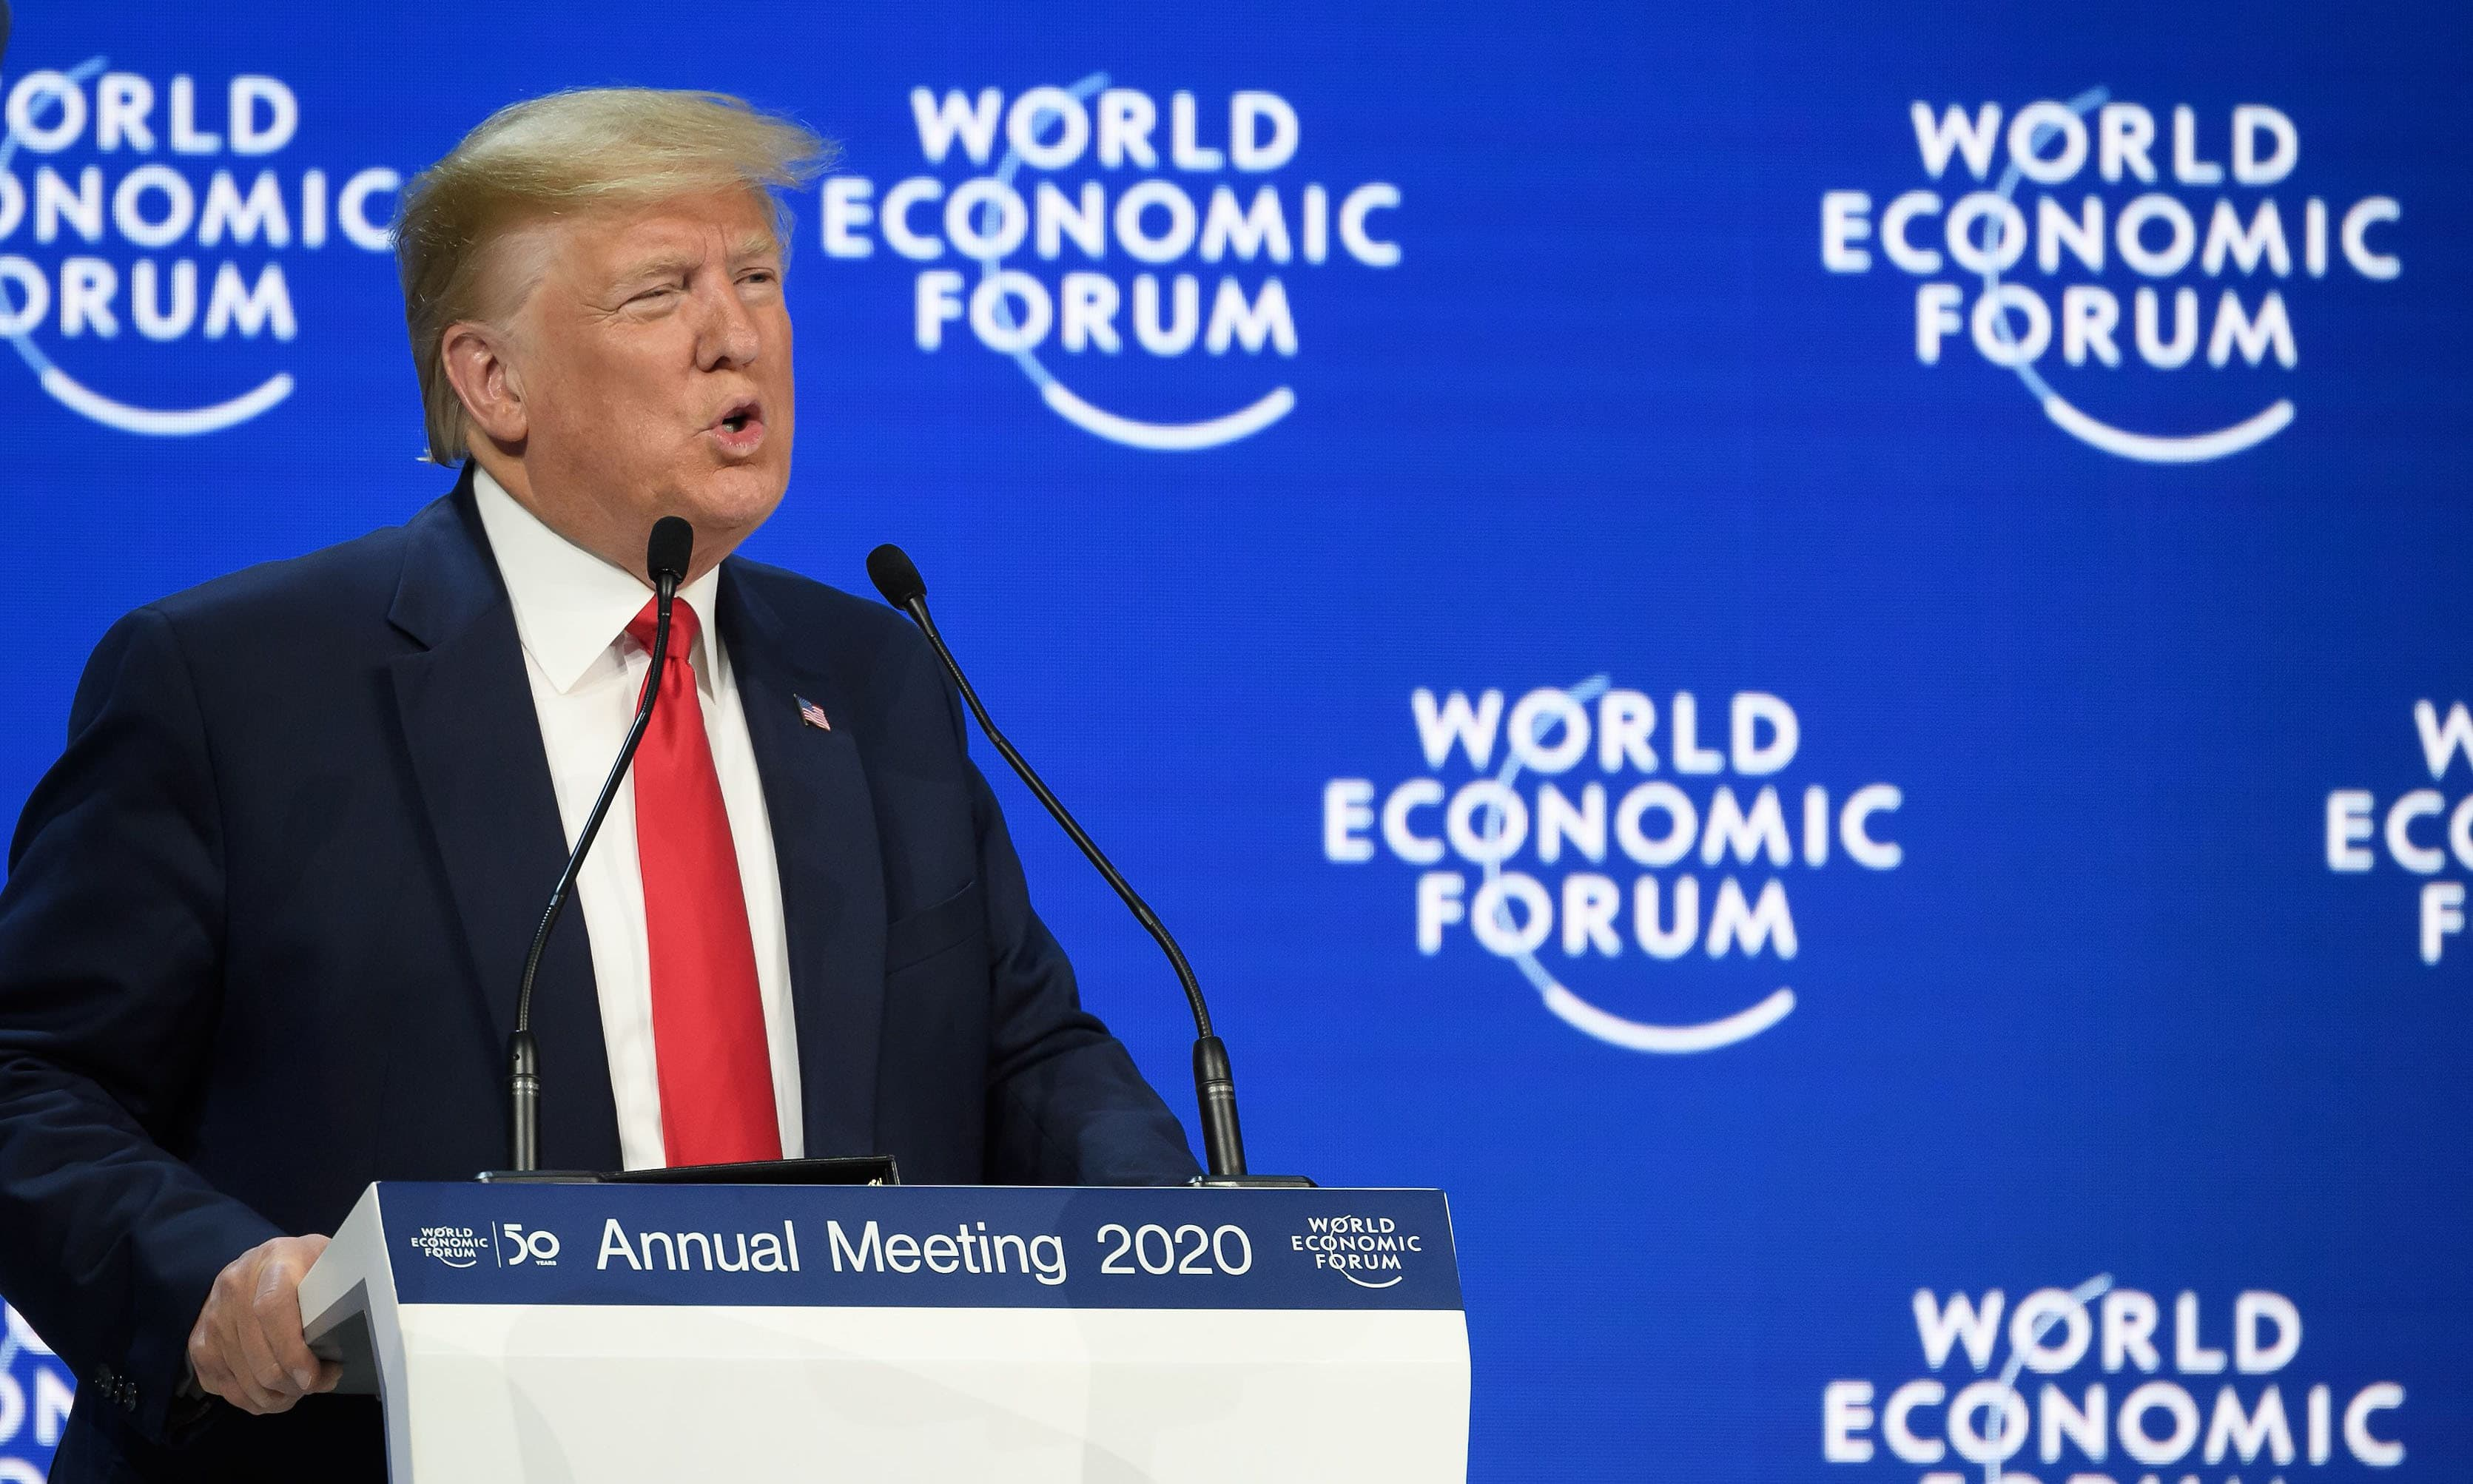 Trump rejects climate 'prophets of doom' as Thunberg warns Davos